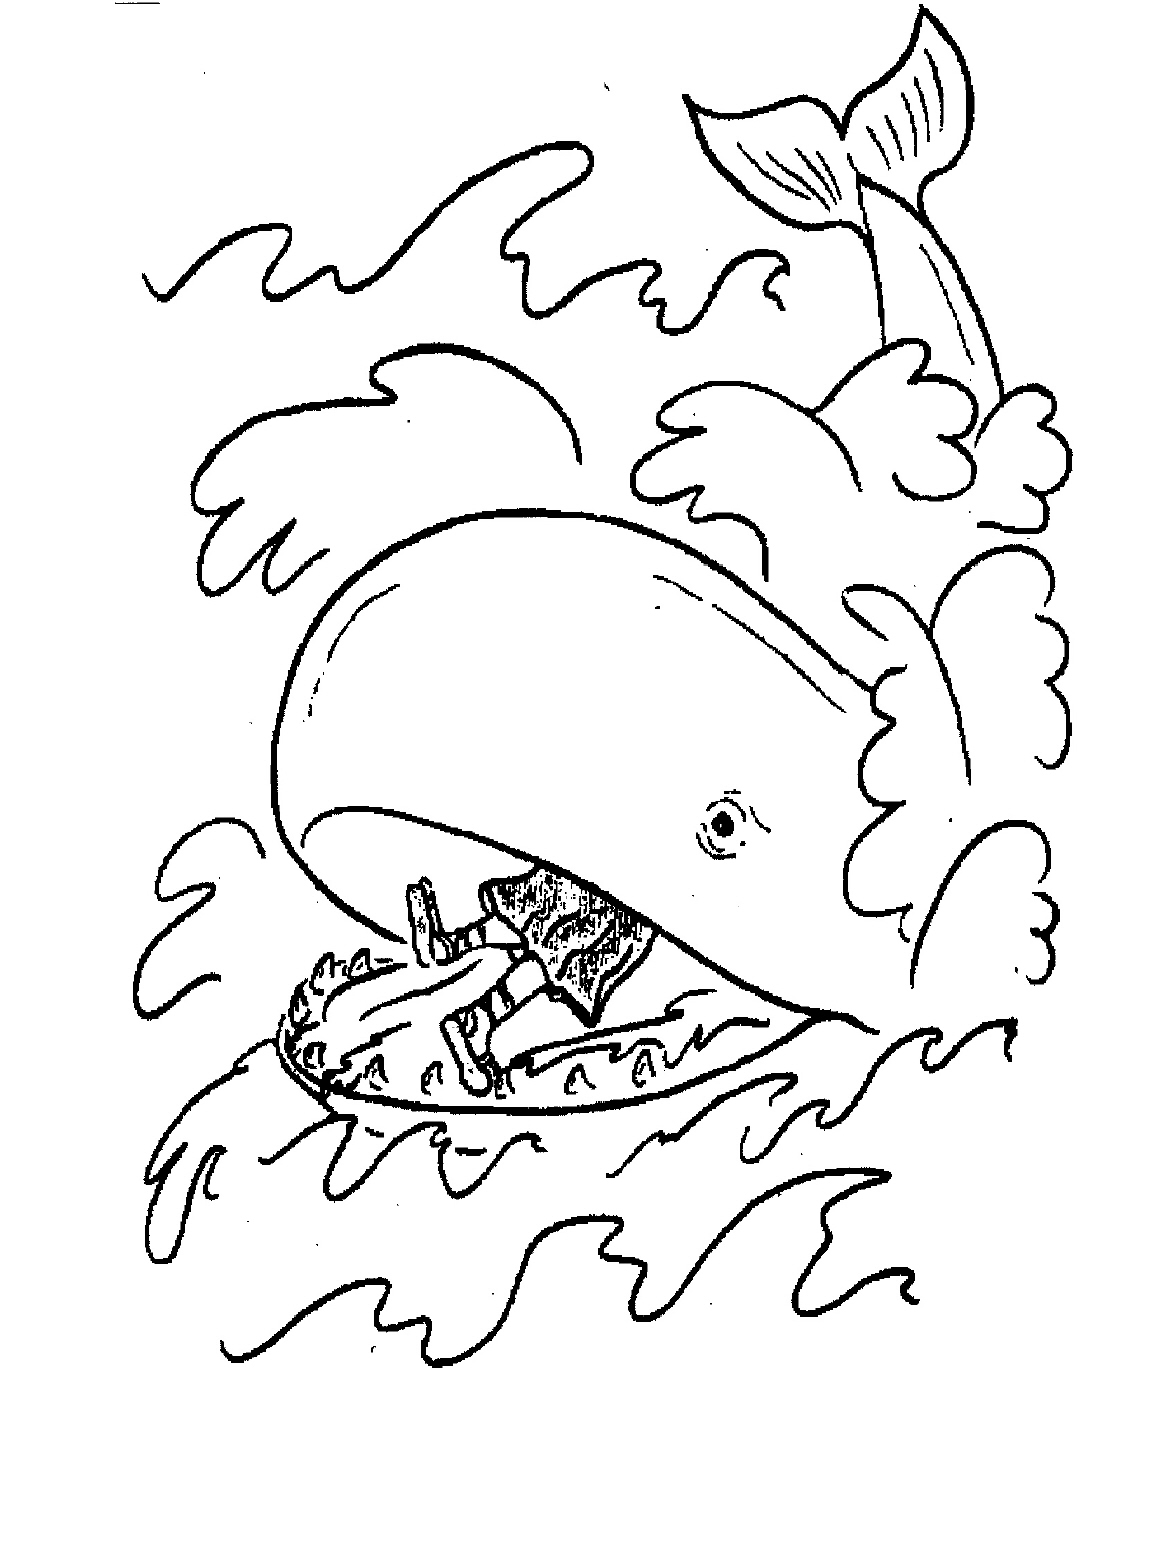 jonah the whale coloring pages jonah and the whale coloring pages coloring pages the jonah coloring whale pages